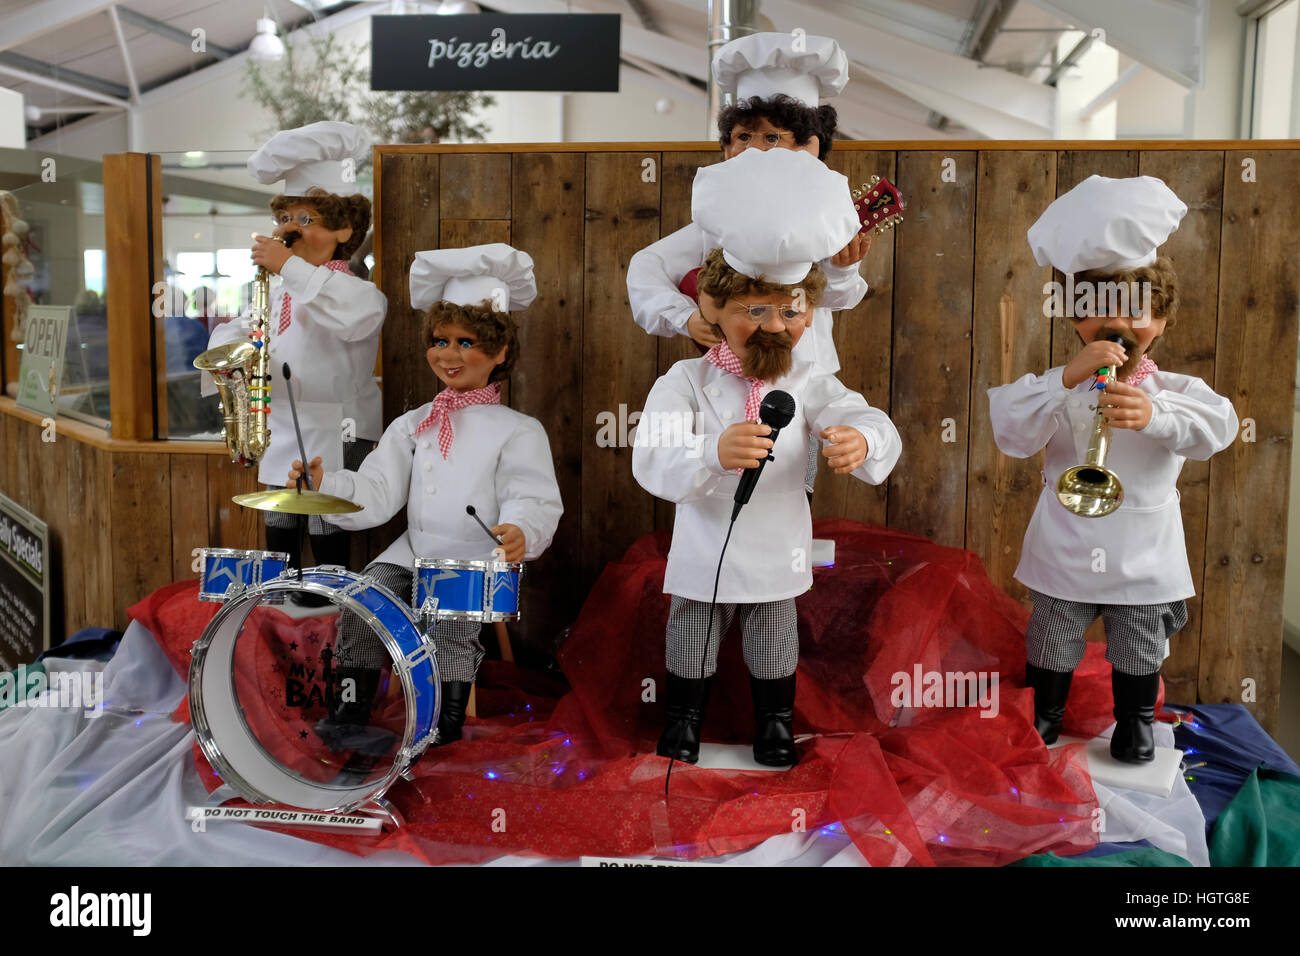 Garden centre center Christmas display Automatons band of chefs playing carols Isle of Wight UK - Stock Image